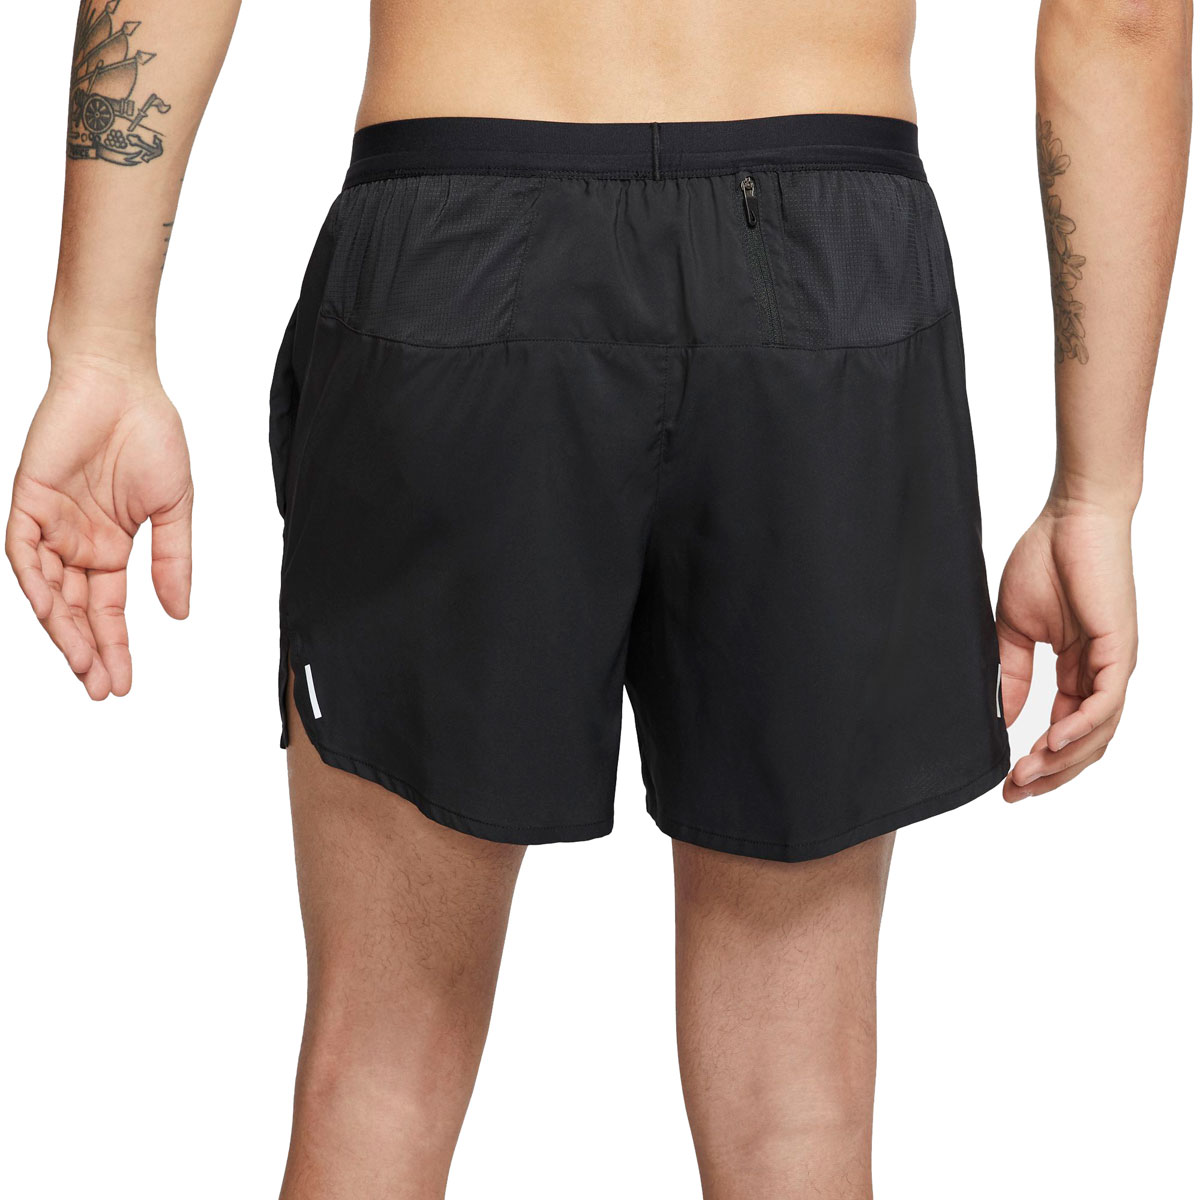 "Men's Nike Flex Stride 5"" Brief Running Shorts, , large, image 2"